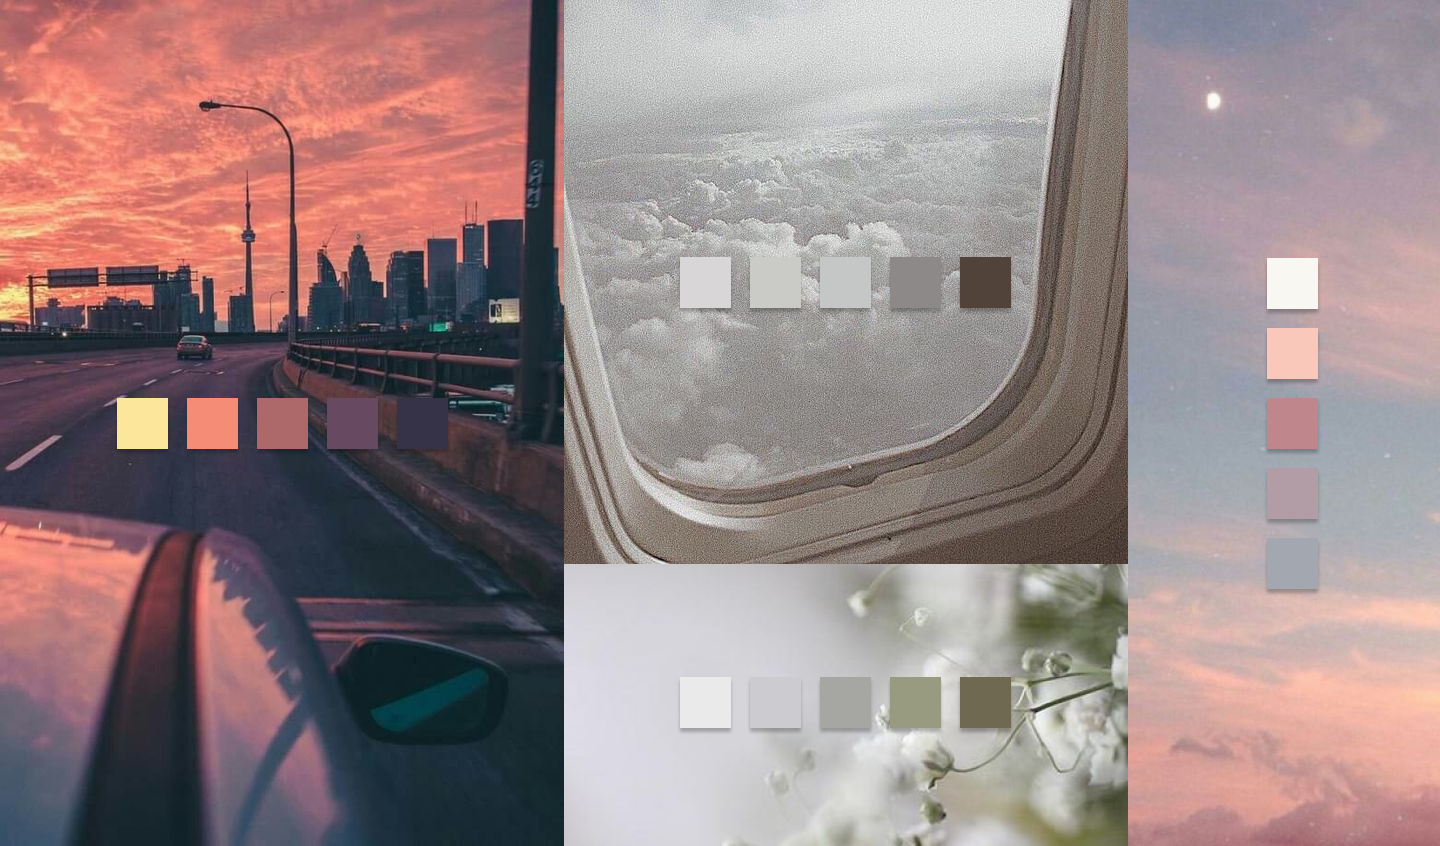 images of a sunset, clouds outside a plane window, dandelions and a pastel cloudy sky